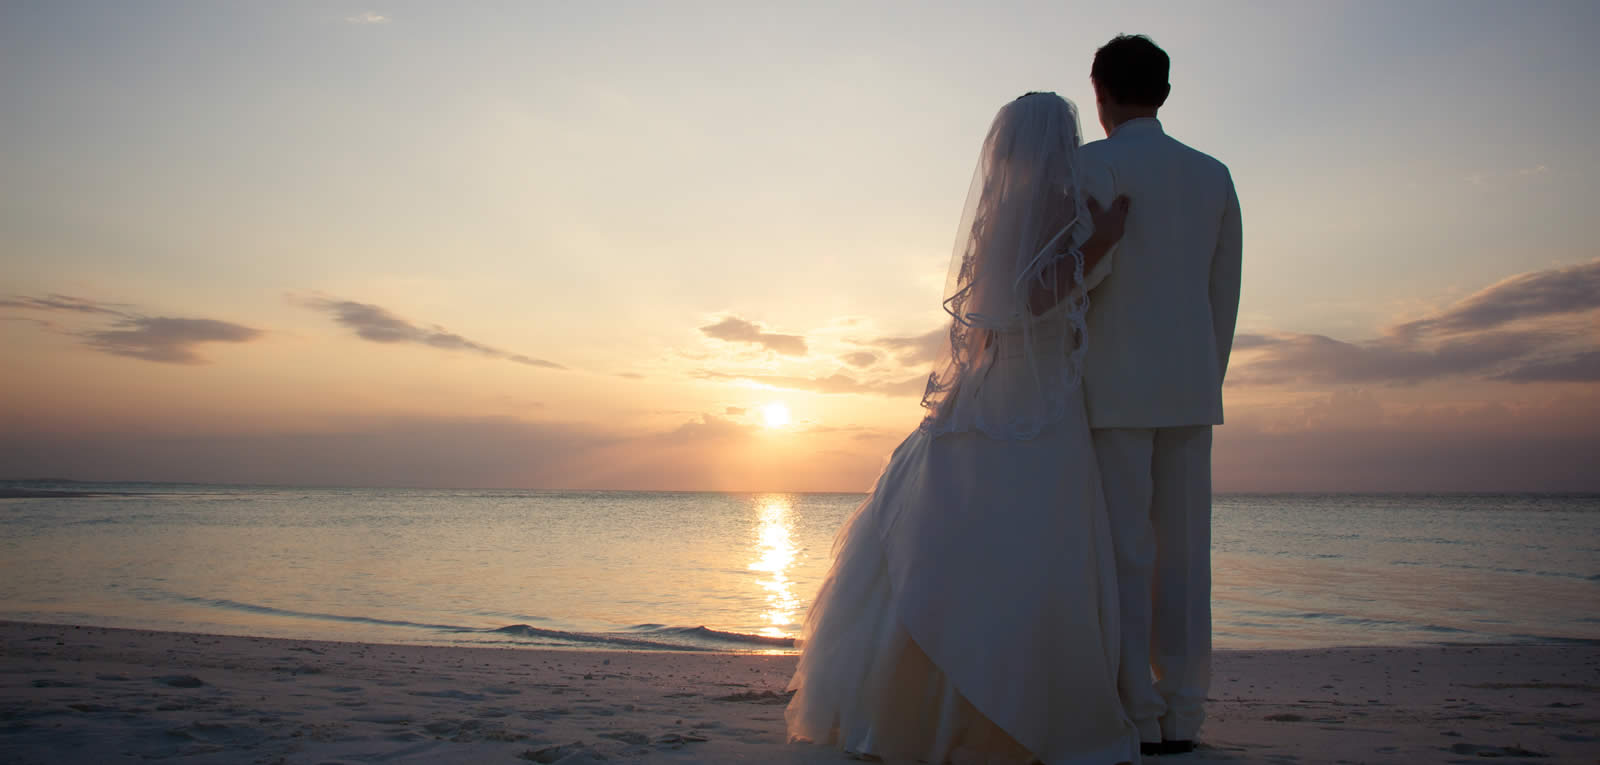 Exchange your vows in paradise